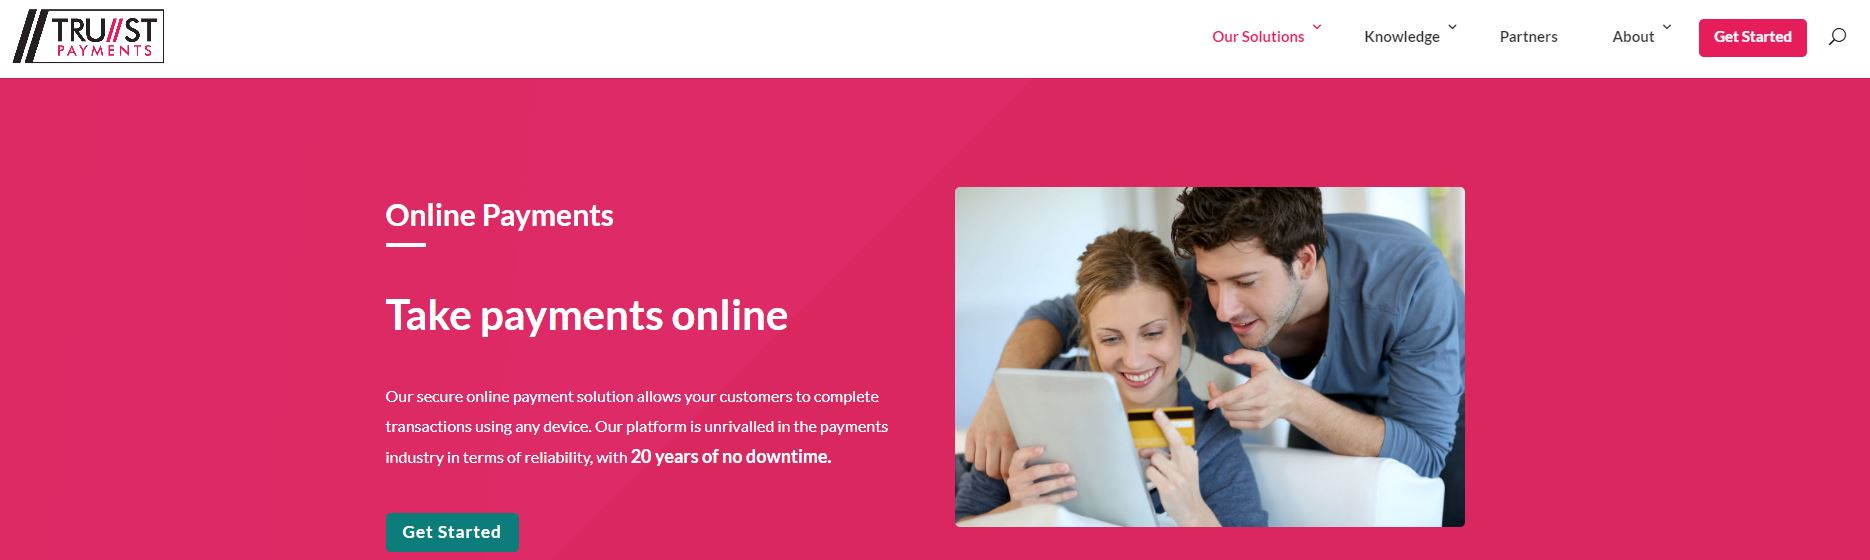 Trust Payments website